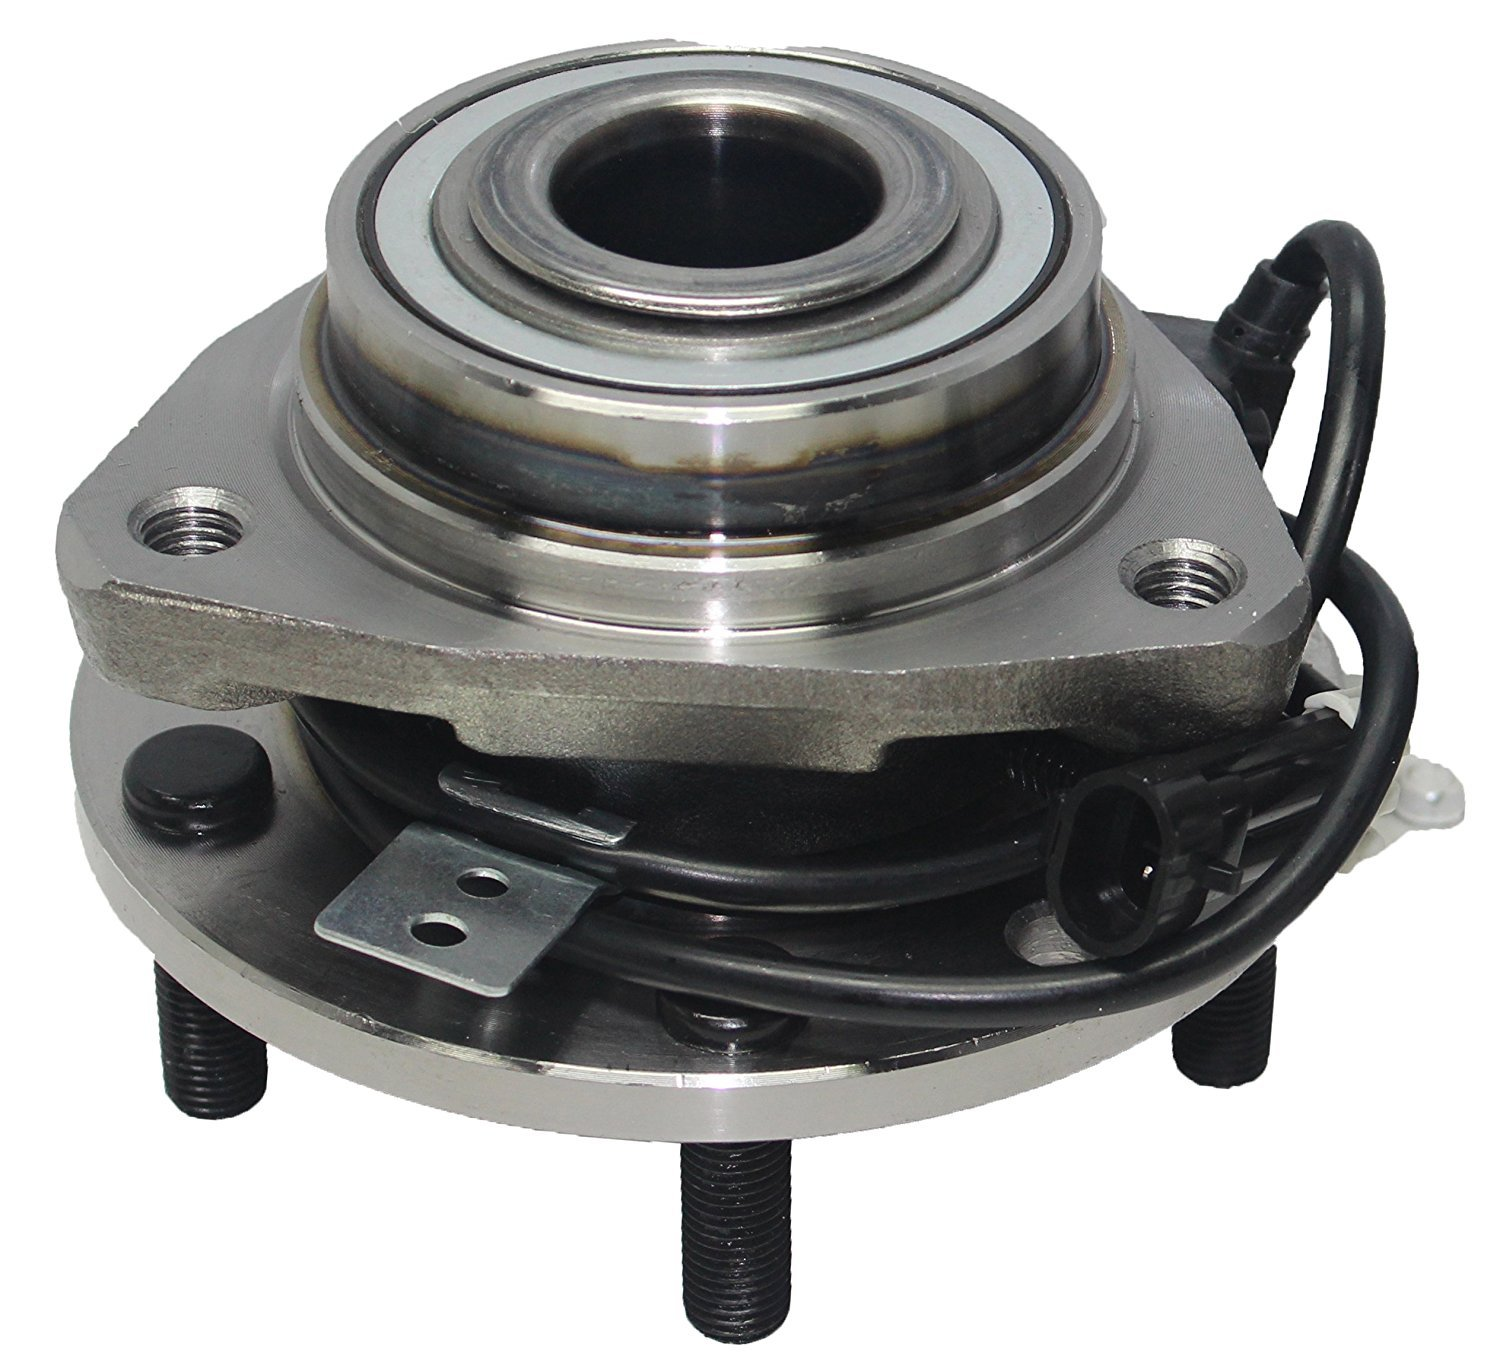 97-05 Jimmy 4x4 97-01 Bravada 4x4 Models Pair or 2 New Front Wheel Hub and Bearing Assembly 5 Lug W//ABS fits 97-04 Sonoma 4x4 98-00 Hombre 4x4 97-05 Blazer 4x4 97-04 S10 4x4